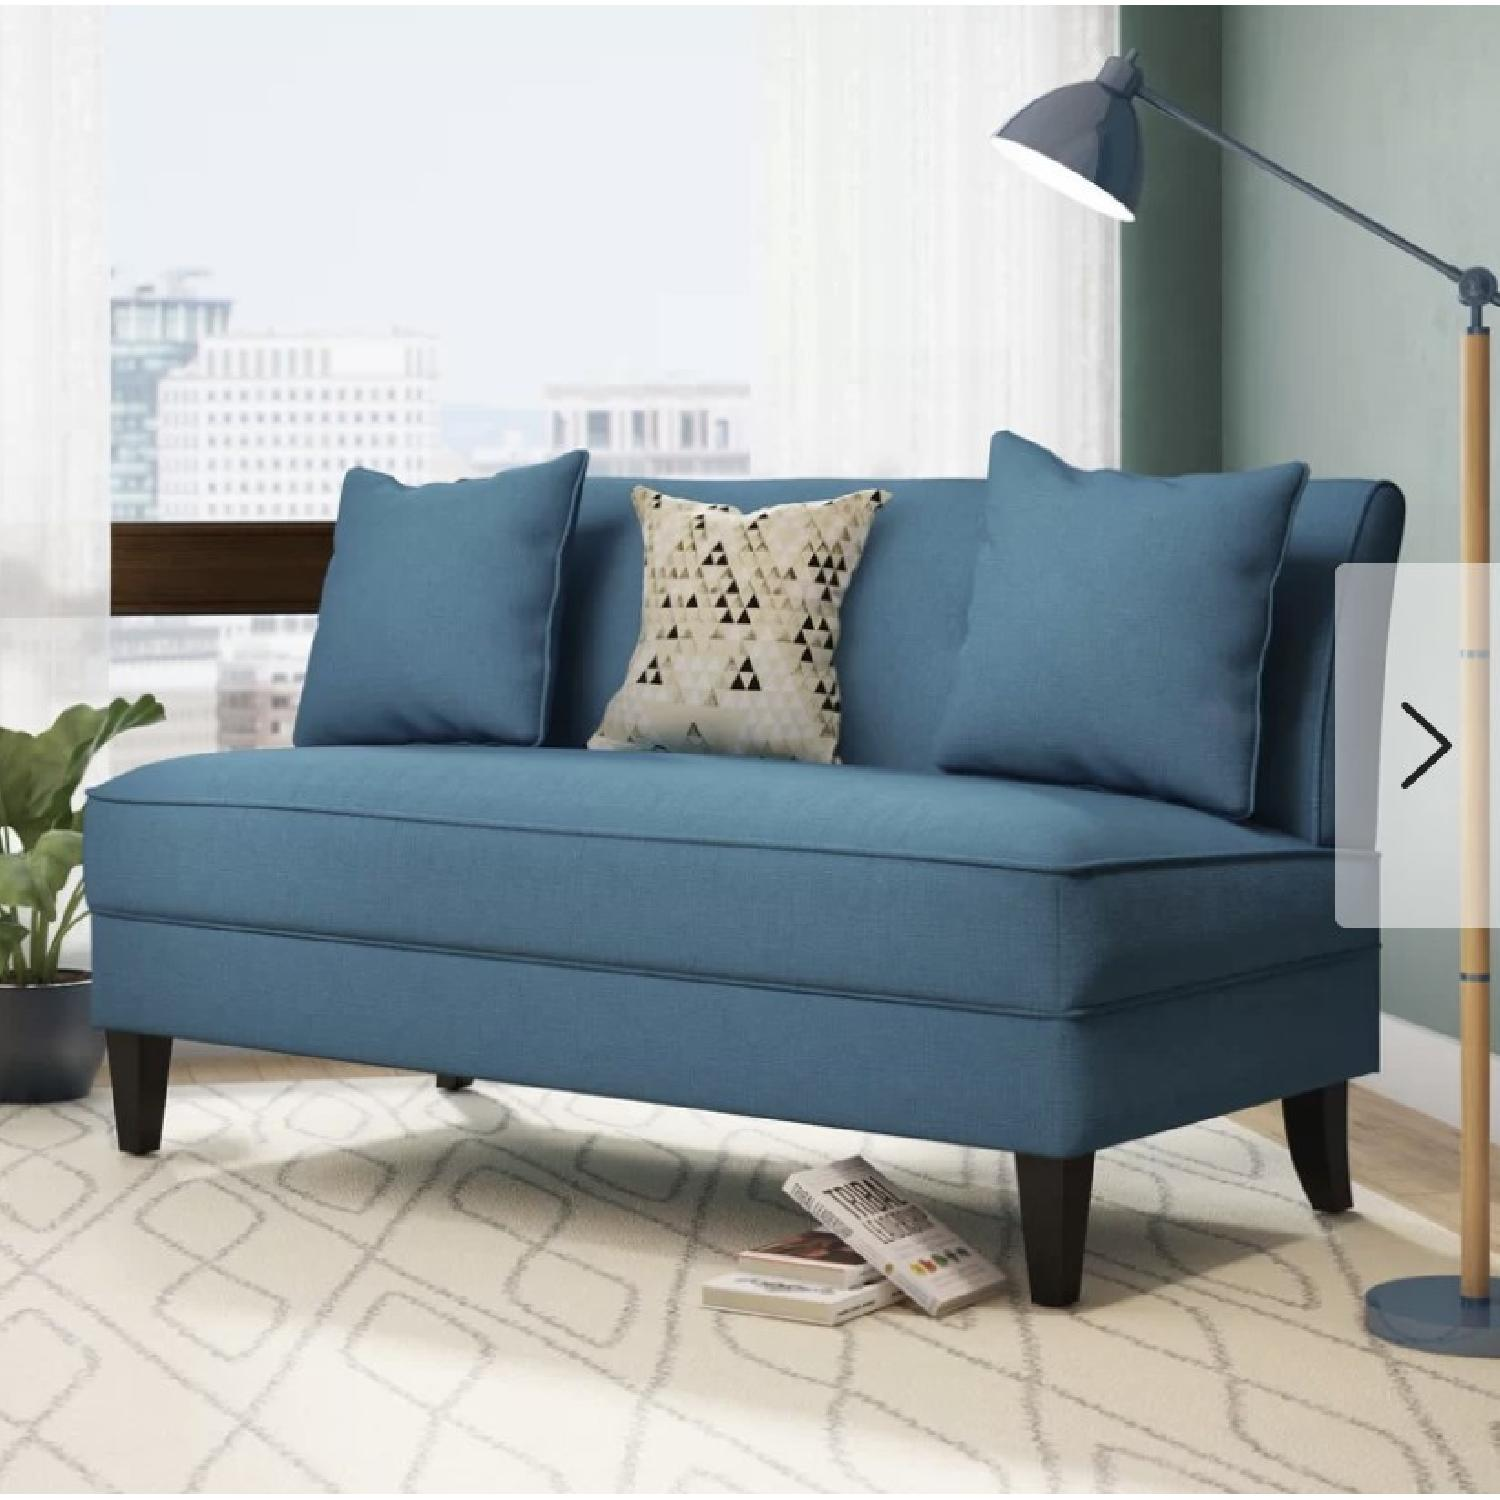 Mercury Row Loveseat in Caribbean Linen - image-1